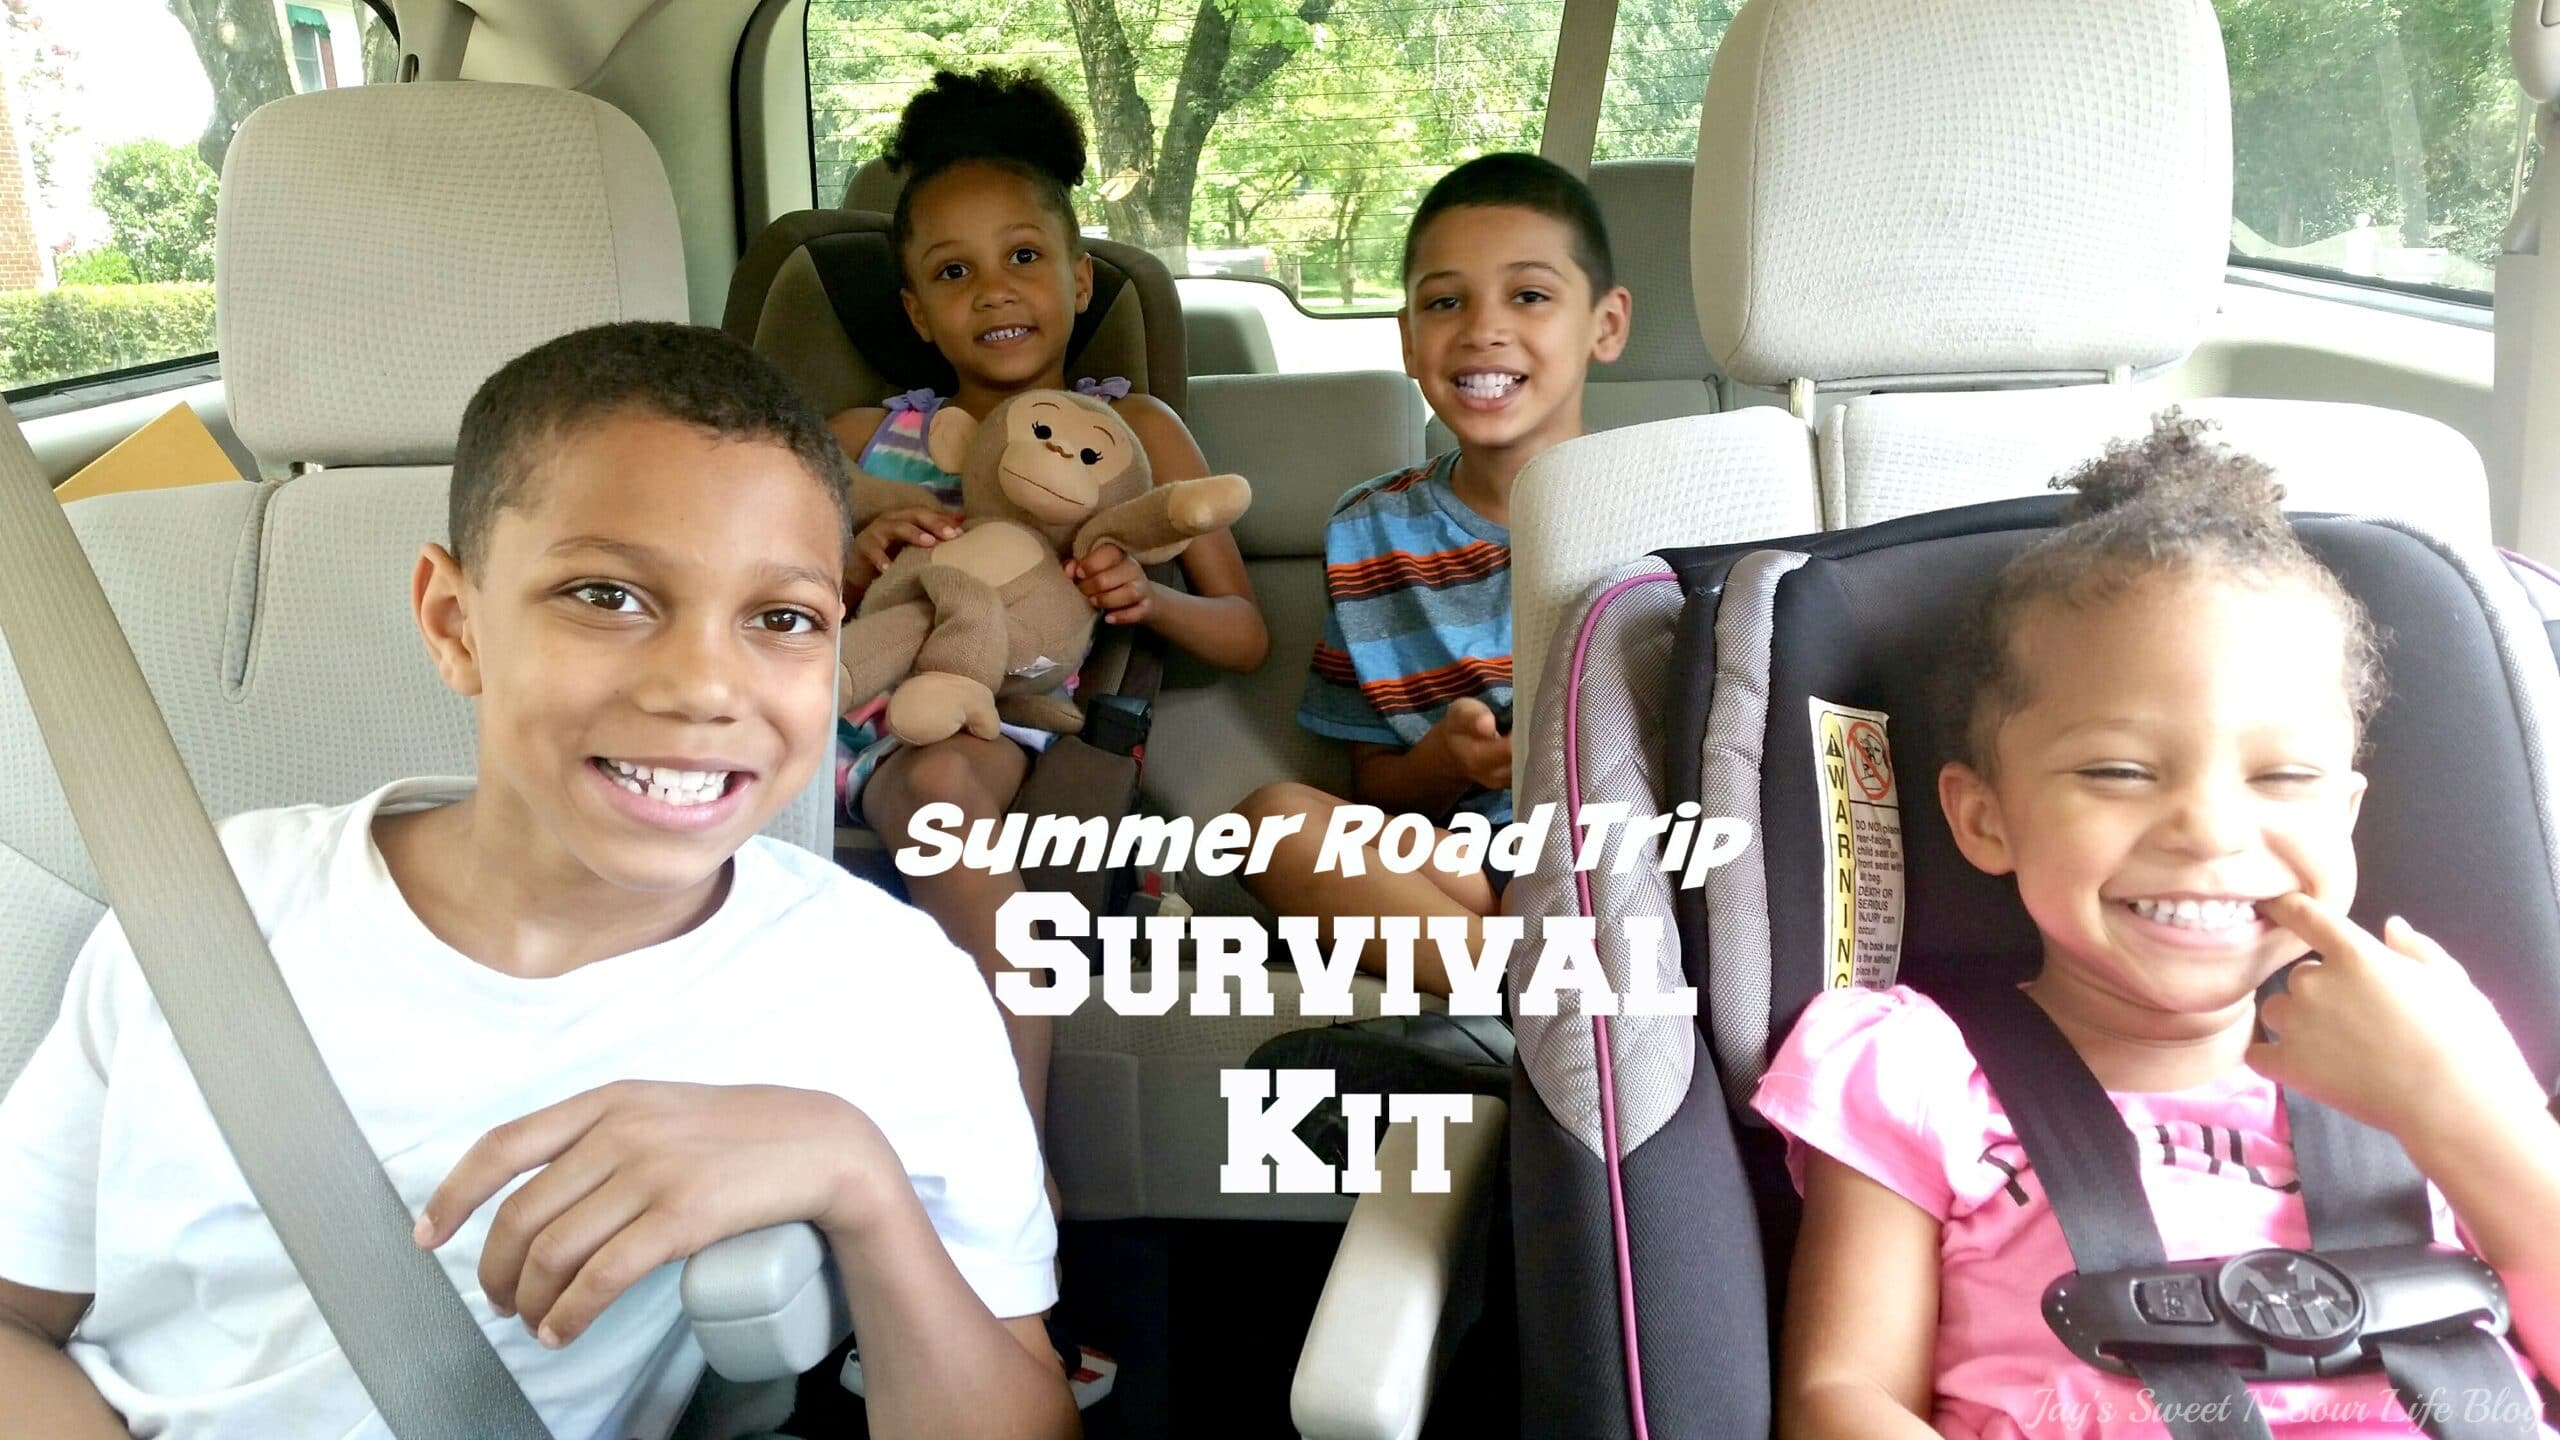 Summer Road Trip Survival Kit